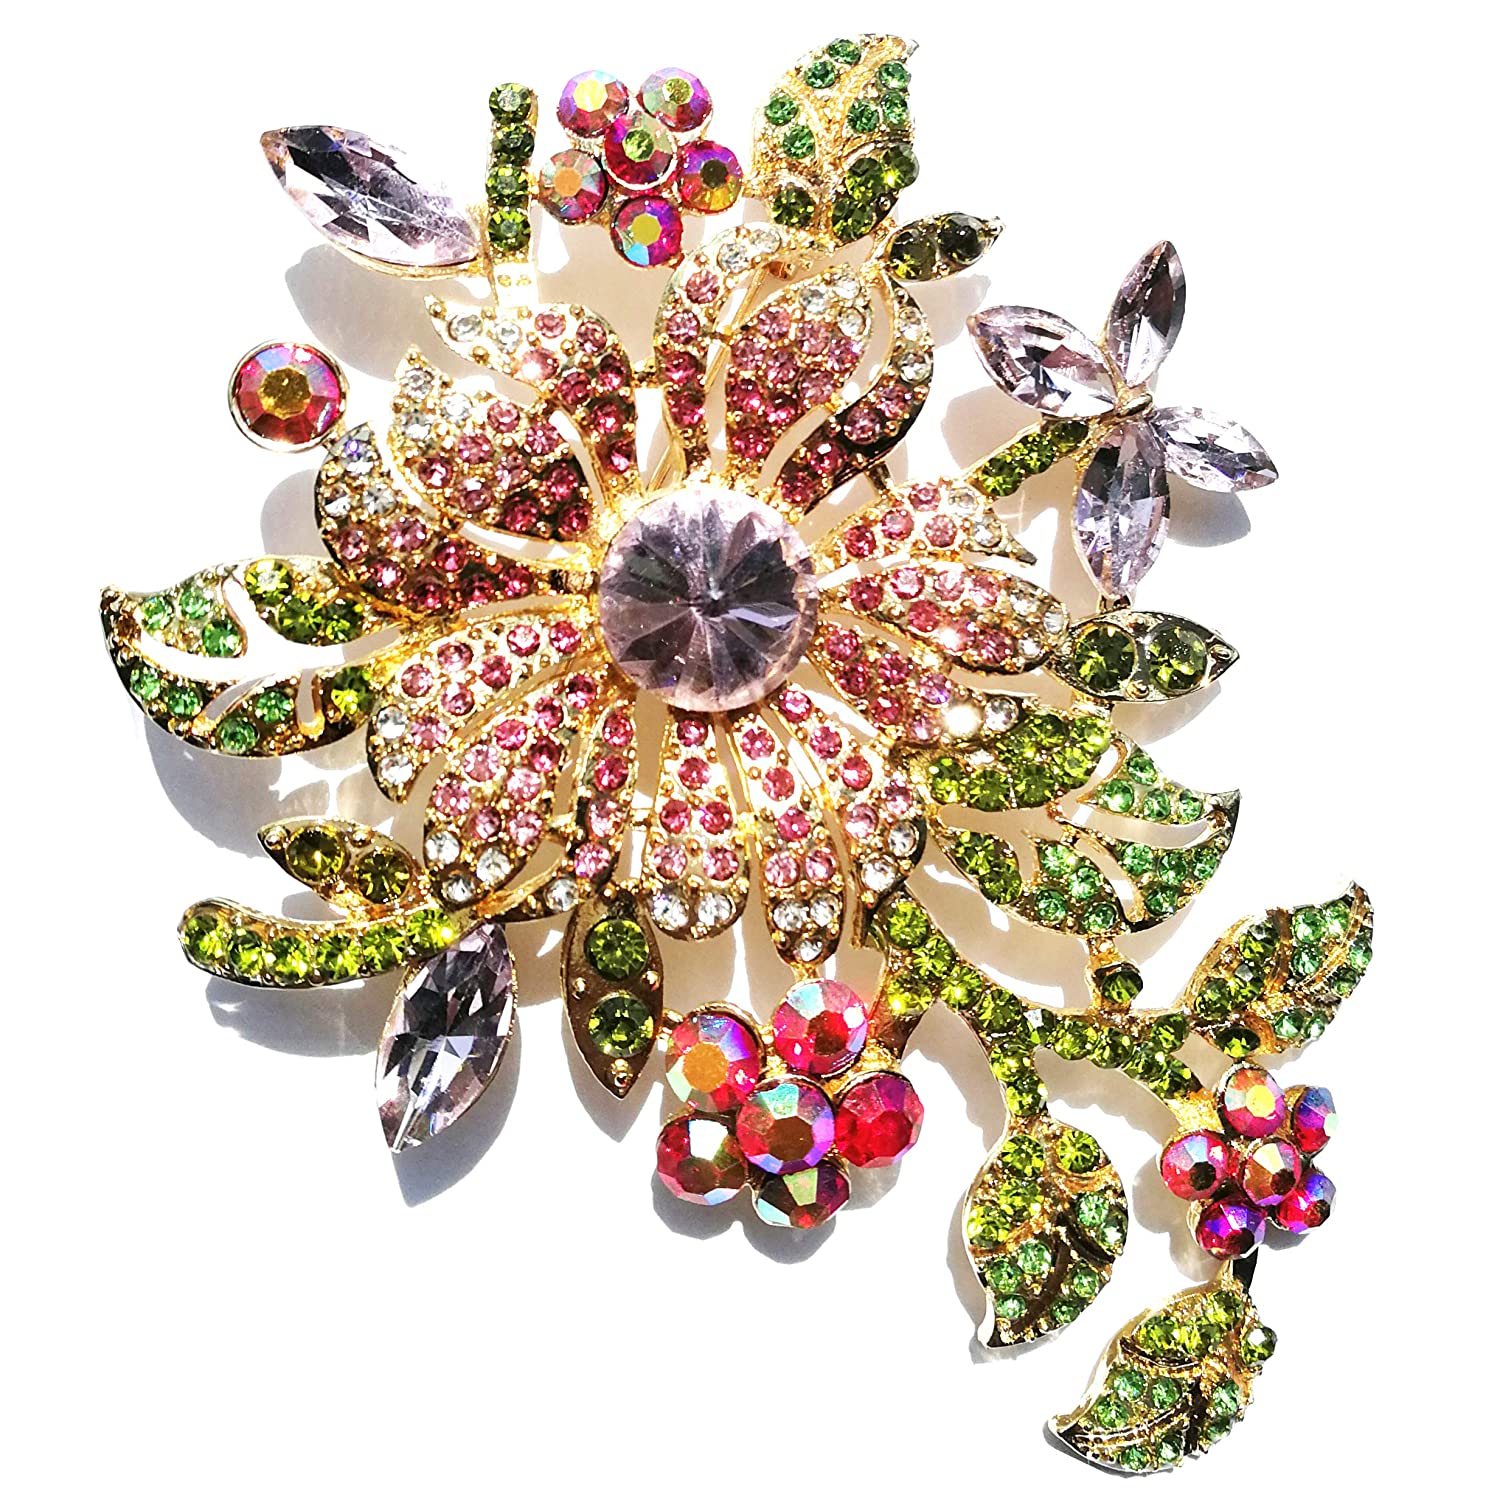 1960s Jewelry Styles and Trends to Wear Klorify Big Flower Brooch for Woman Girl Elegant Pink Crystal Rhinestone Pin Romantic Wedding Bride Bridesmaid Rhinestone Brooches and Pins Jewelry $9.99 AT vintagedancer.com